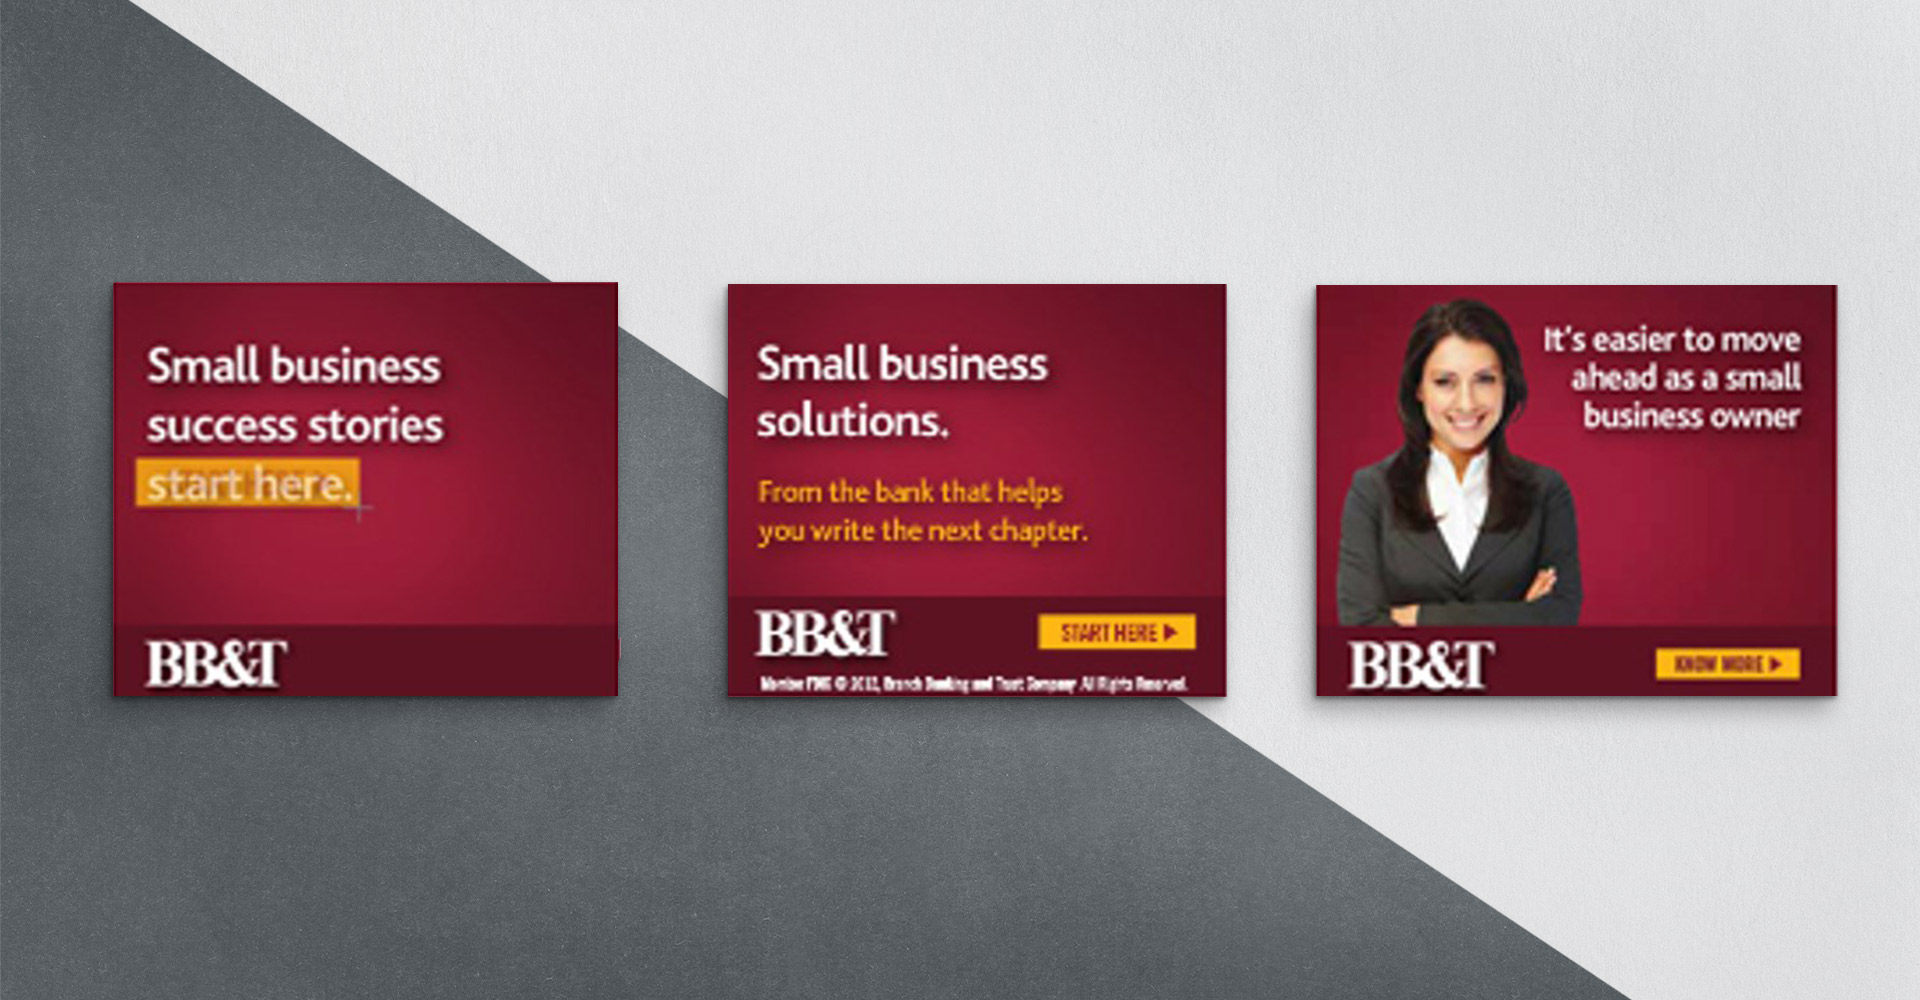 BB&T digital display banners